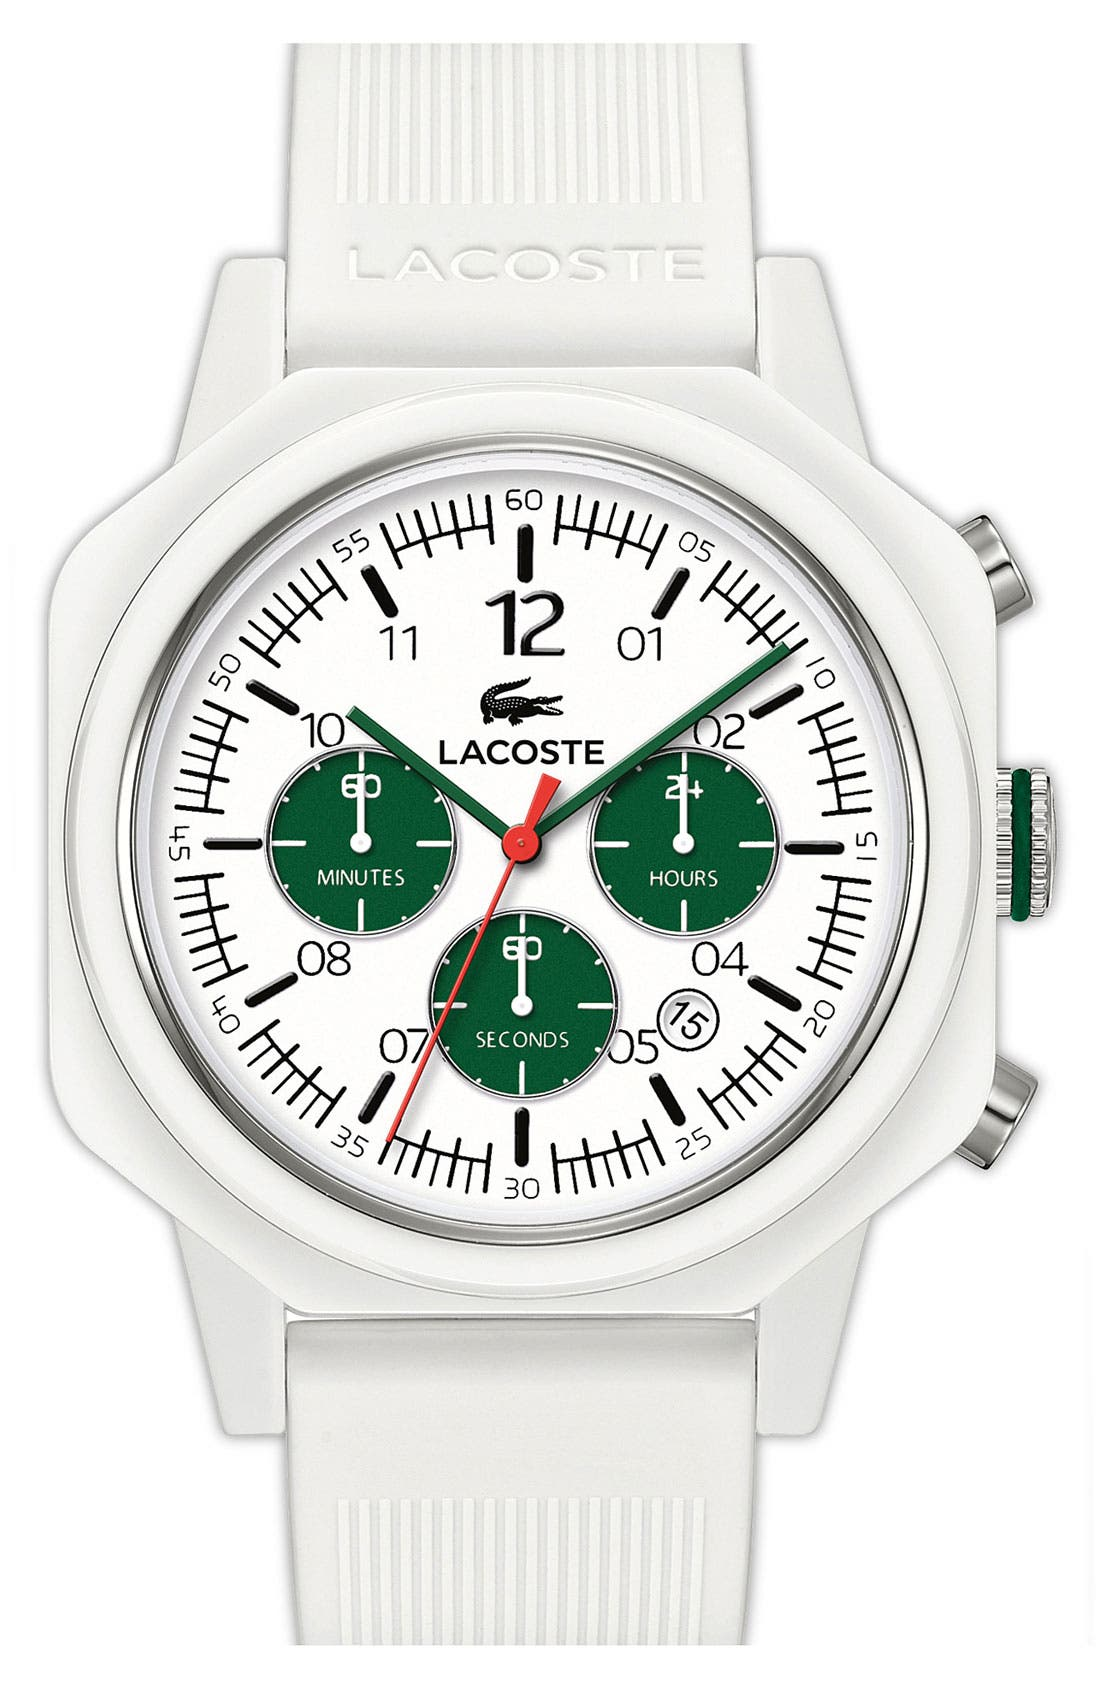 Main Image - Lacoste '80th Anniversary' Chronograph Watch, 44mm